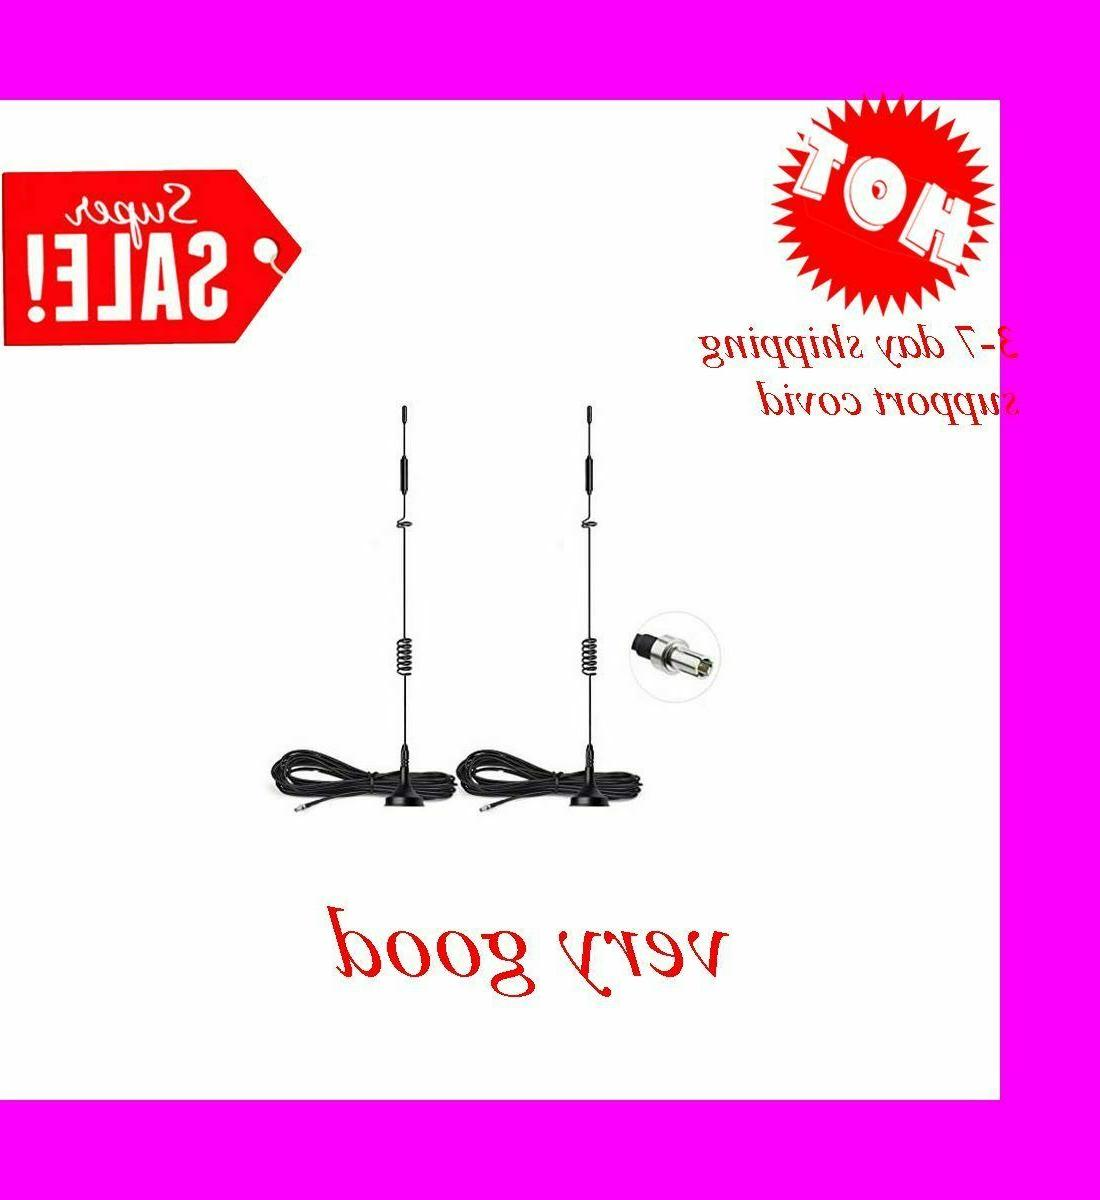 4g lte 8dbi magnetic base mimo ts9